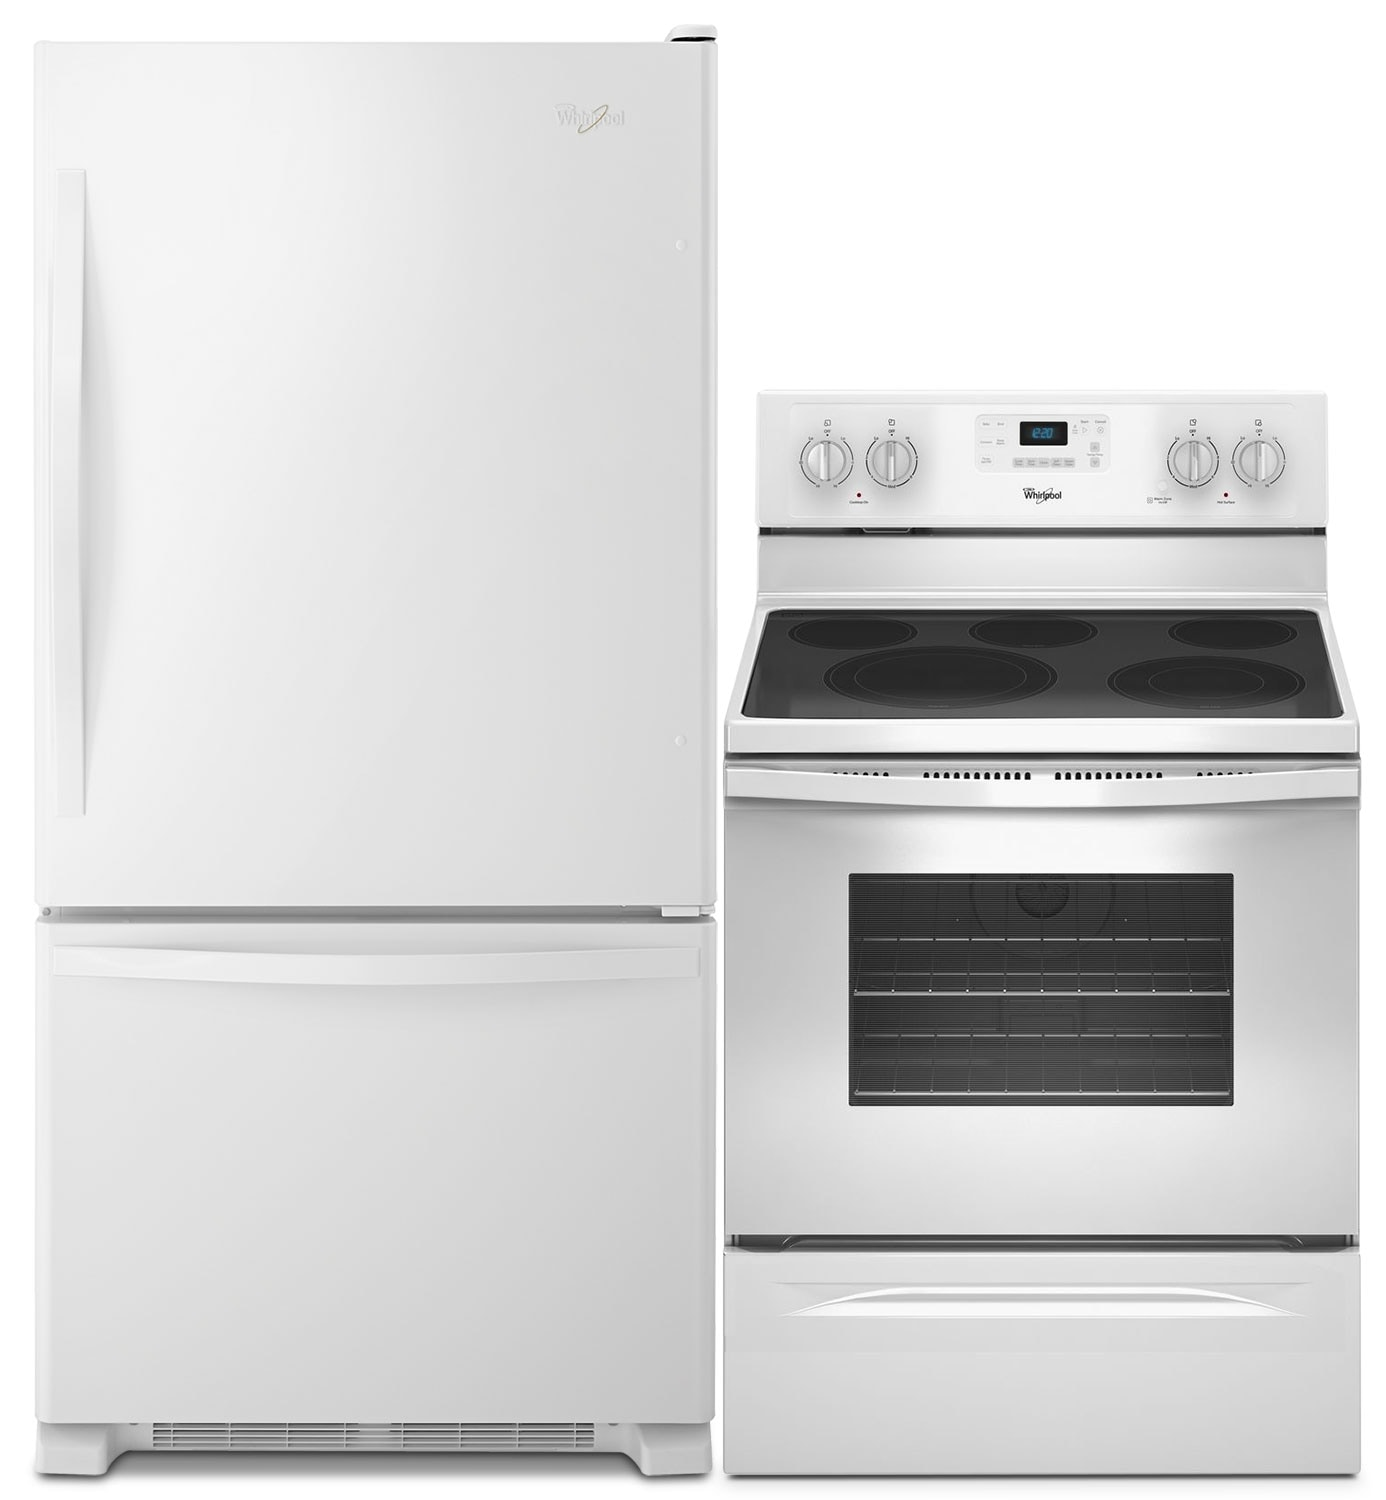 Refrigerators and Freezers - Whirlpool® 18.5 Cu. Ft. Refrigerator and 5.3 Cu. Ft. Electric Range Package